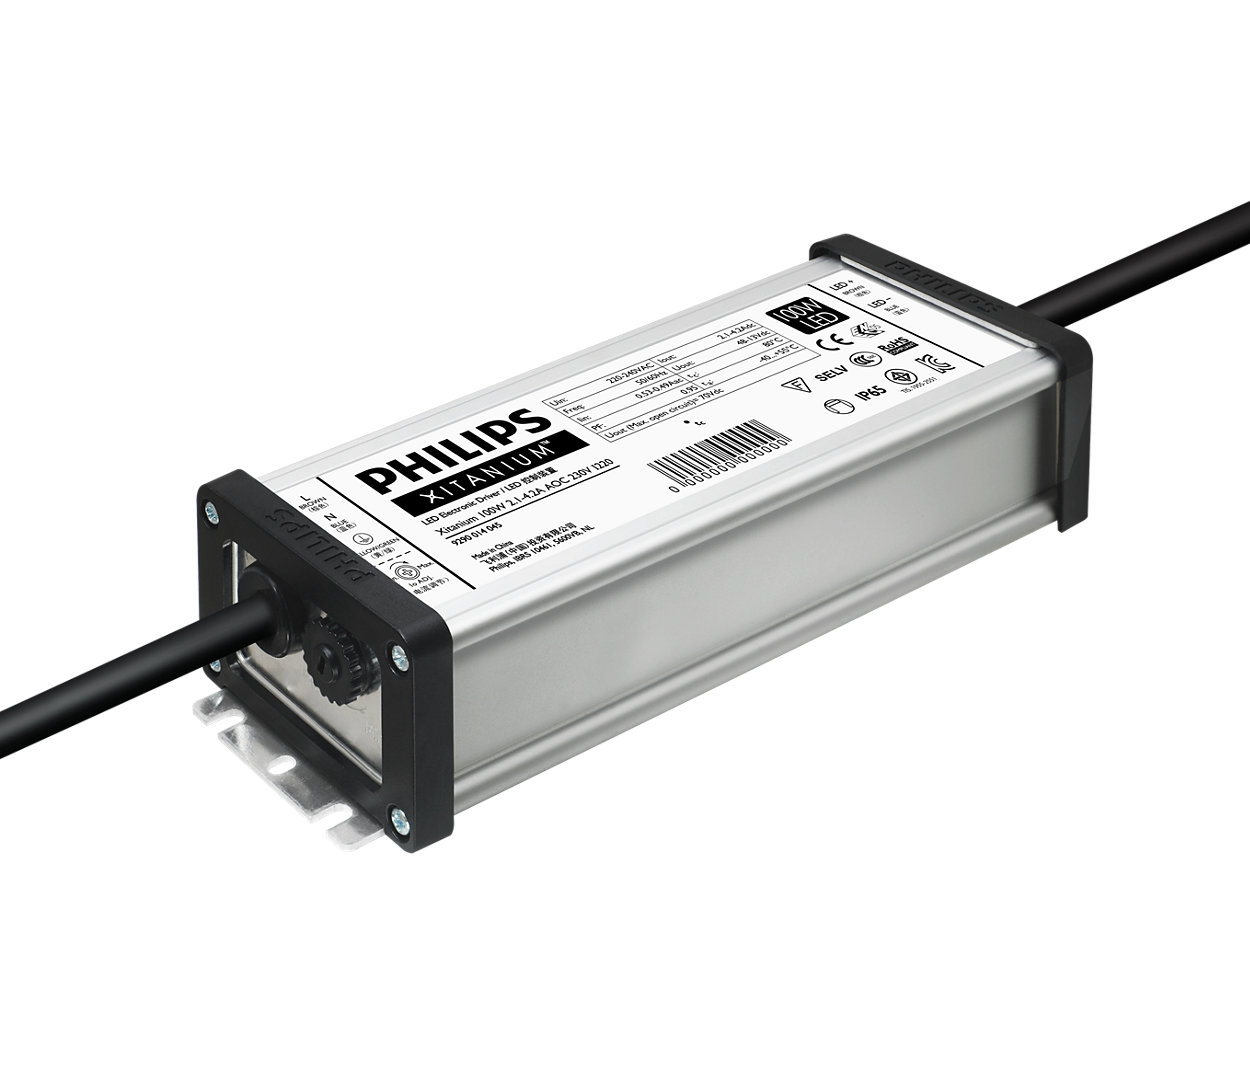 Reliable, high performance technology for extreme LED applications